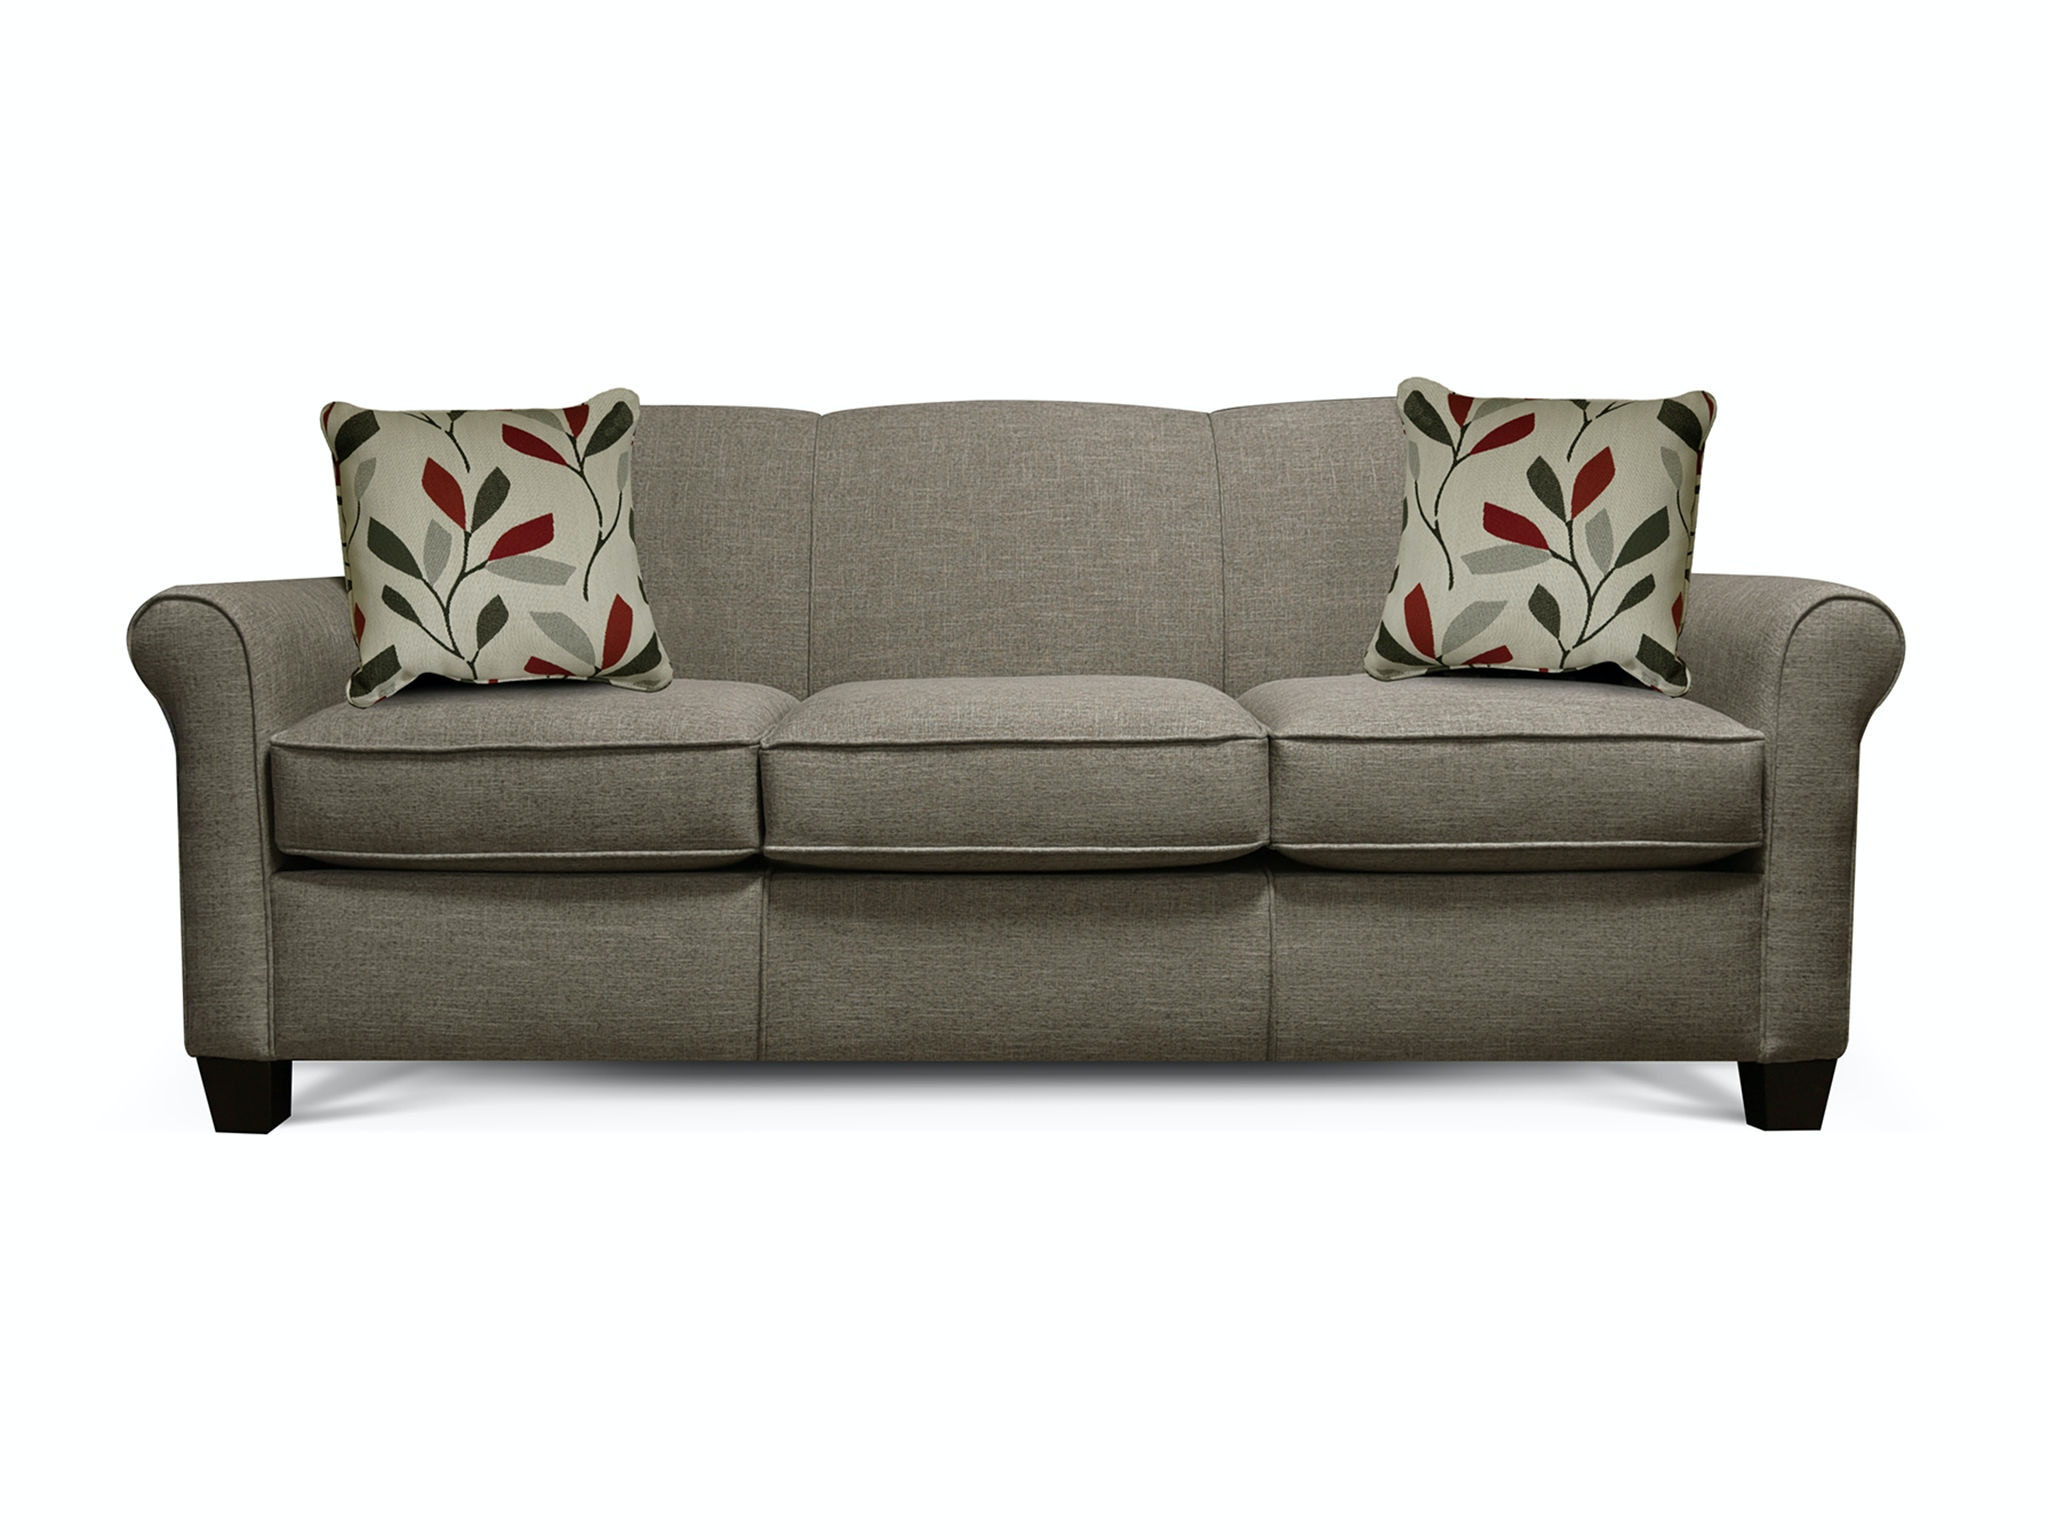 england furniture doughty s furniture inc clayton nj rh doughtysfurniture com Mission Furniture Sofa Mission Style Sofas and Loveseats